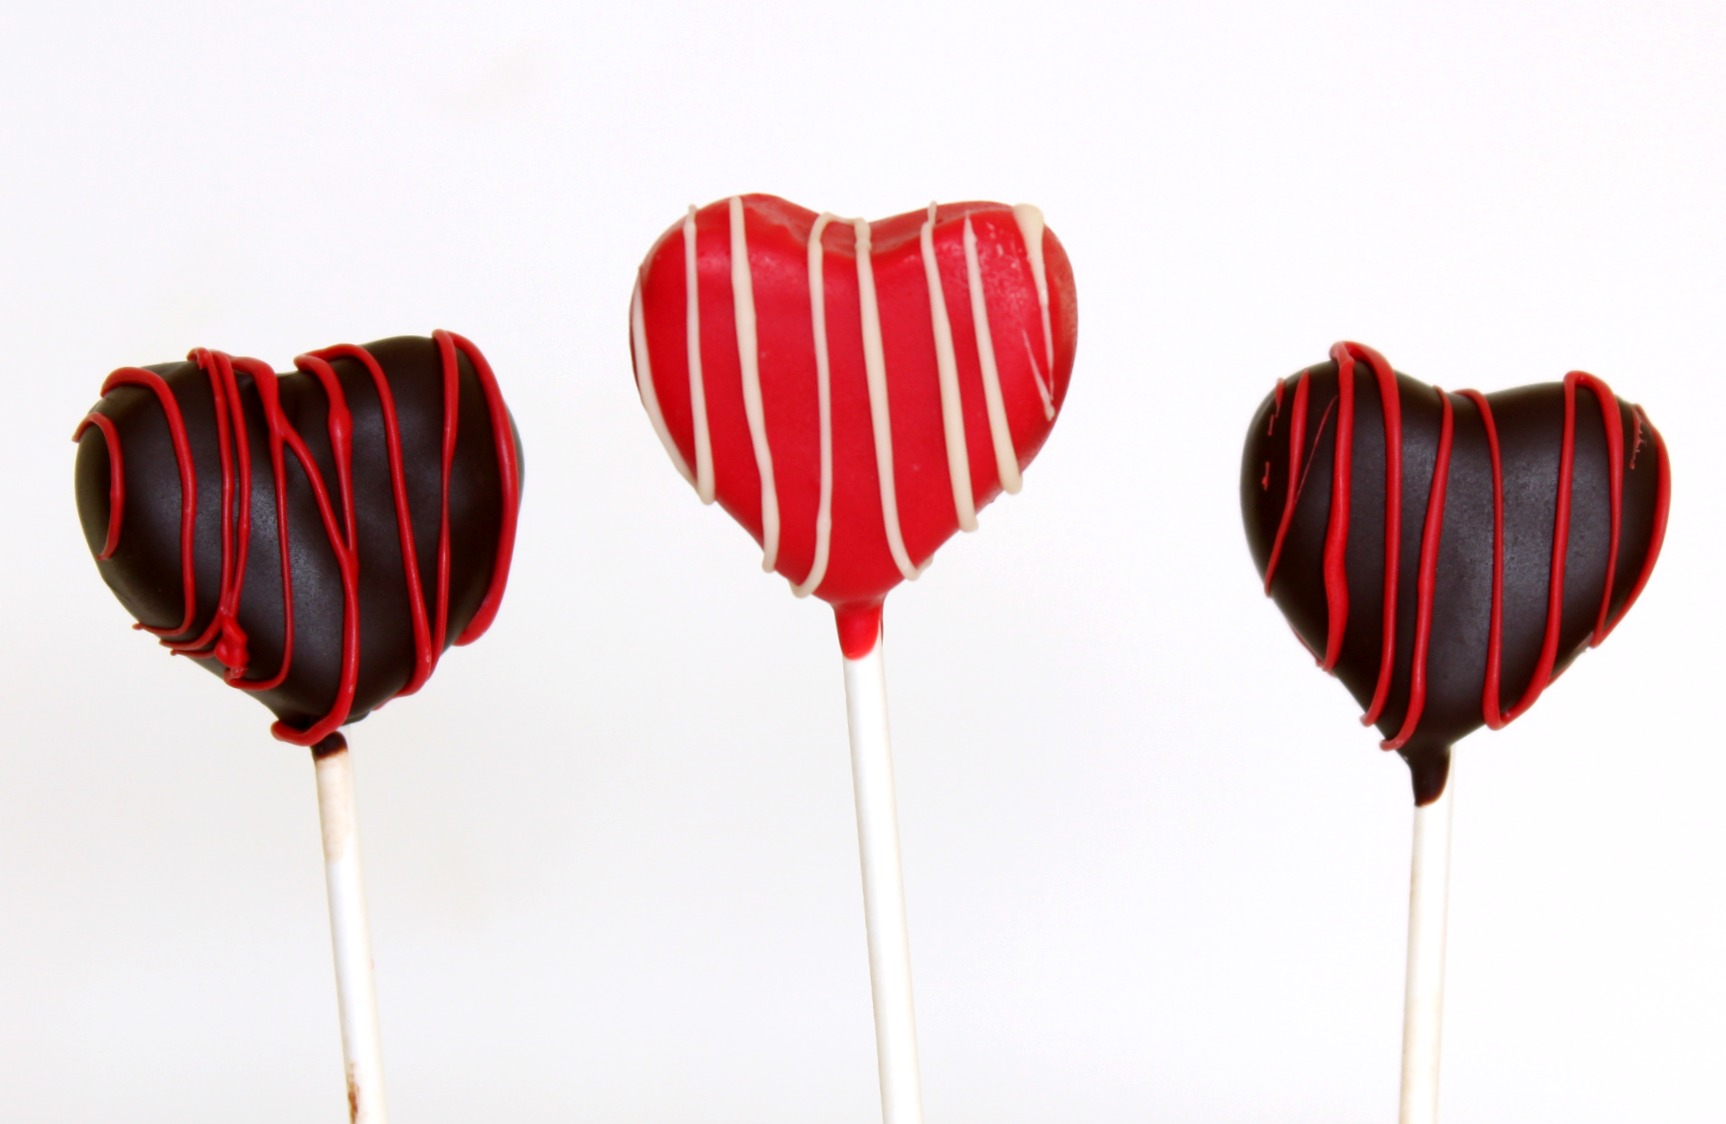 Heart shaped cake pops up